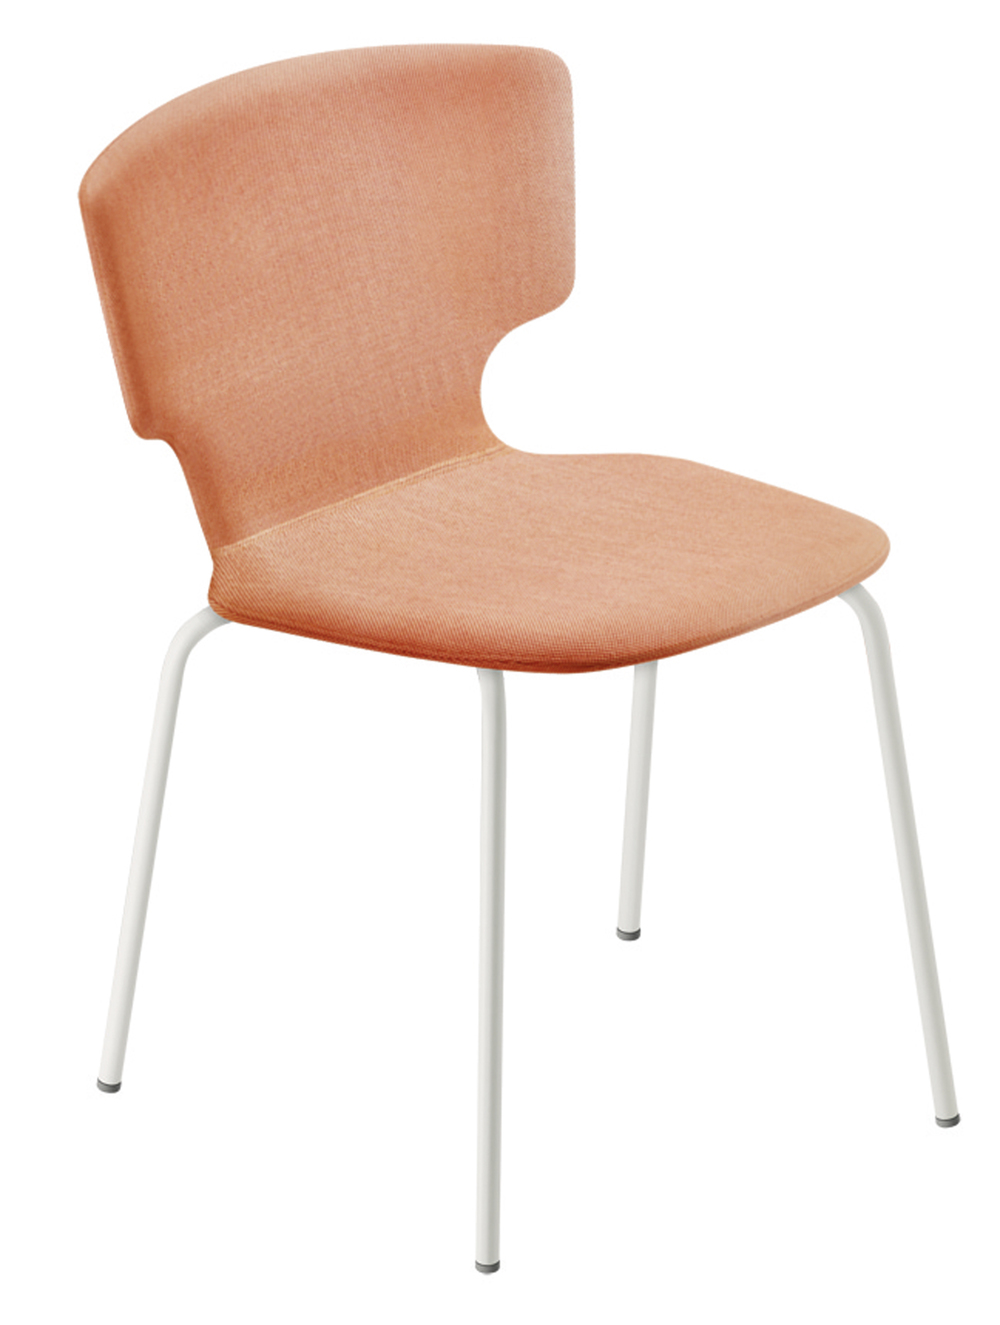 enna chair.jpg